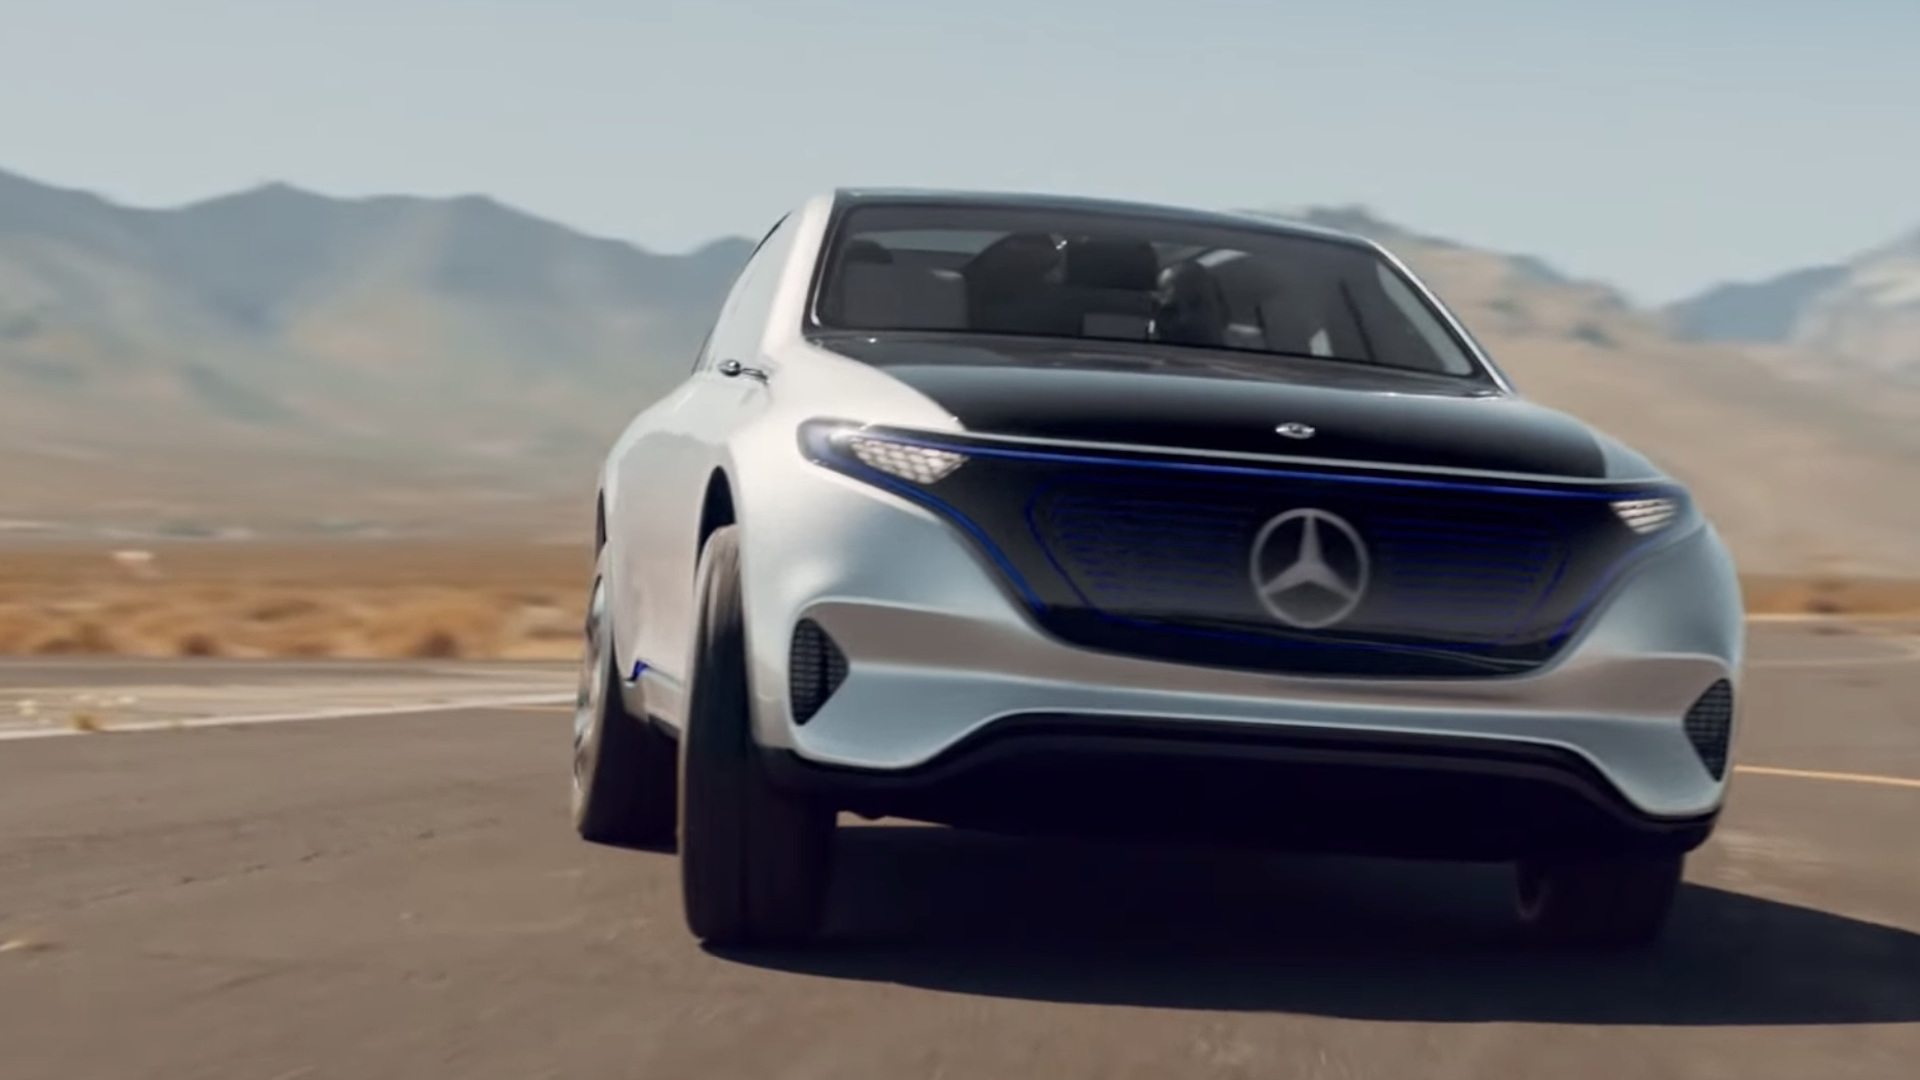 Mercedes-Benz Generation EQ in video ad